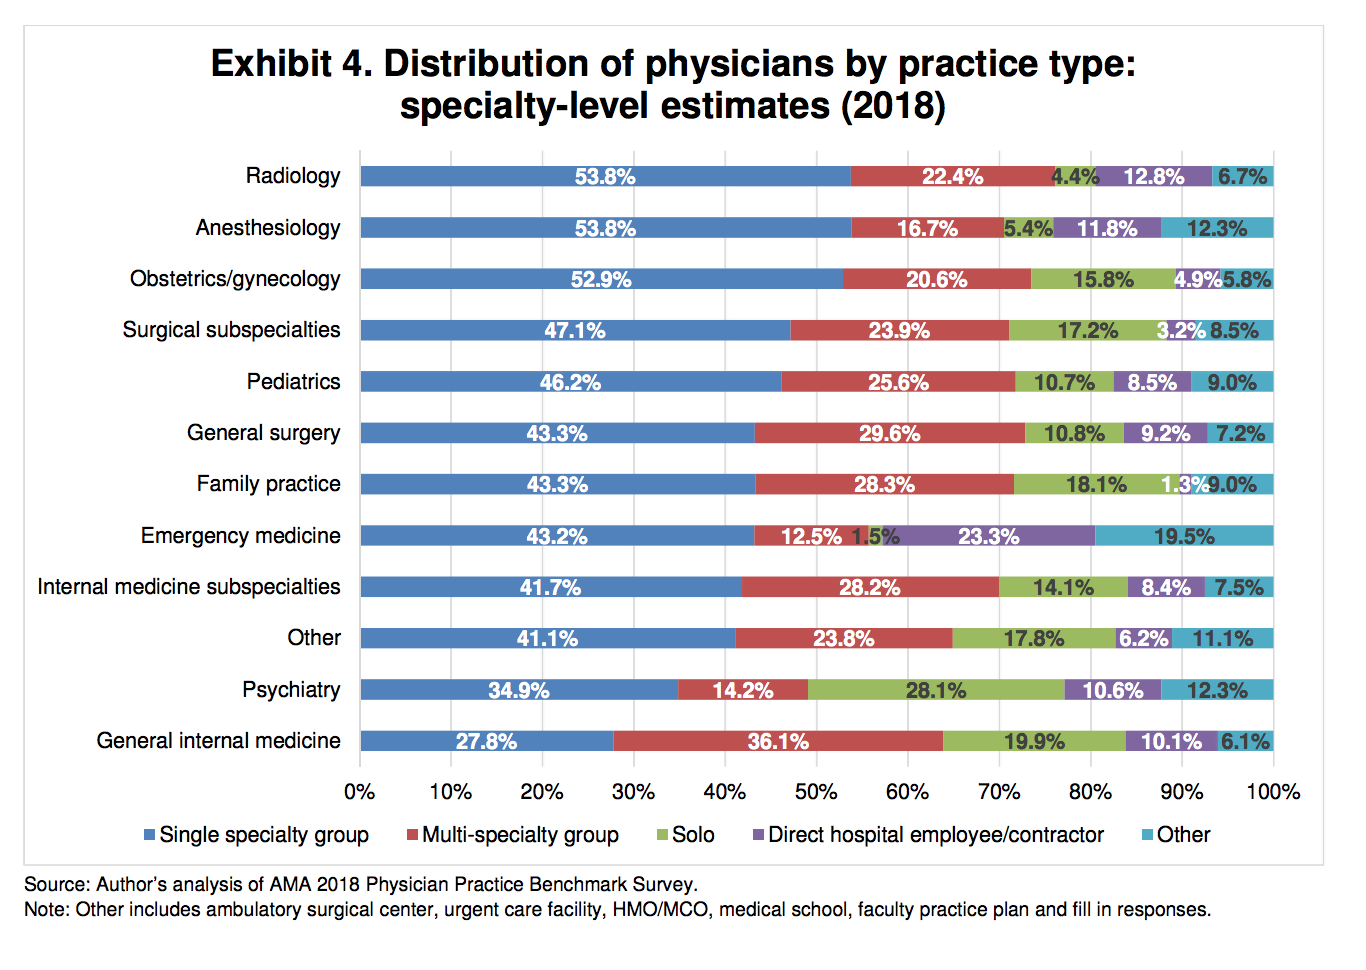 Distribution of physicians by practice